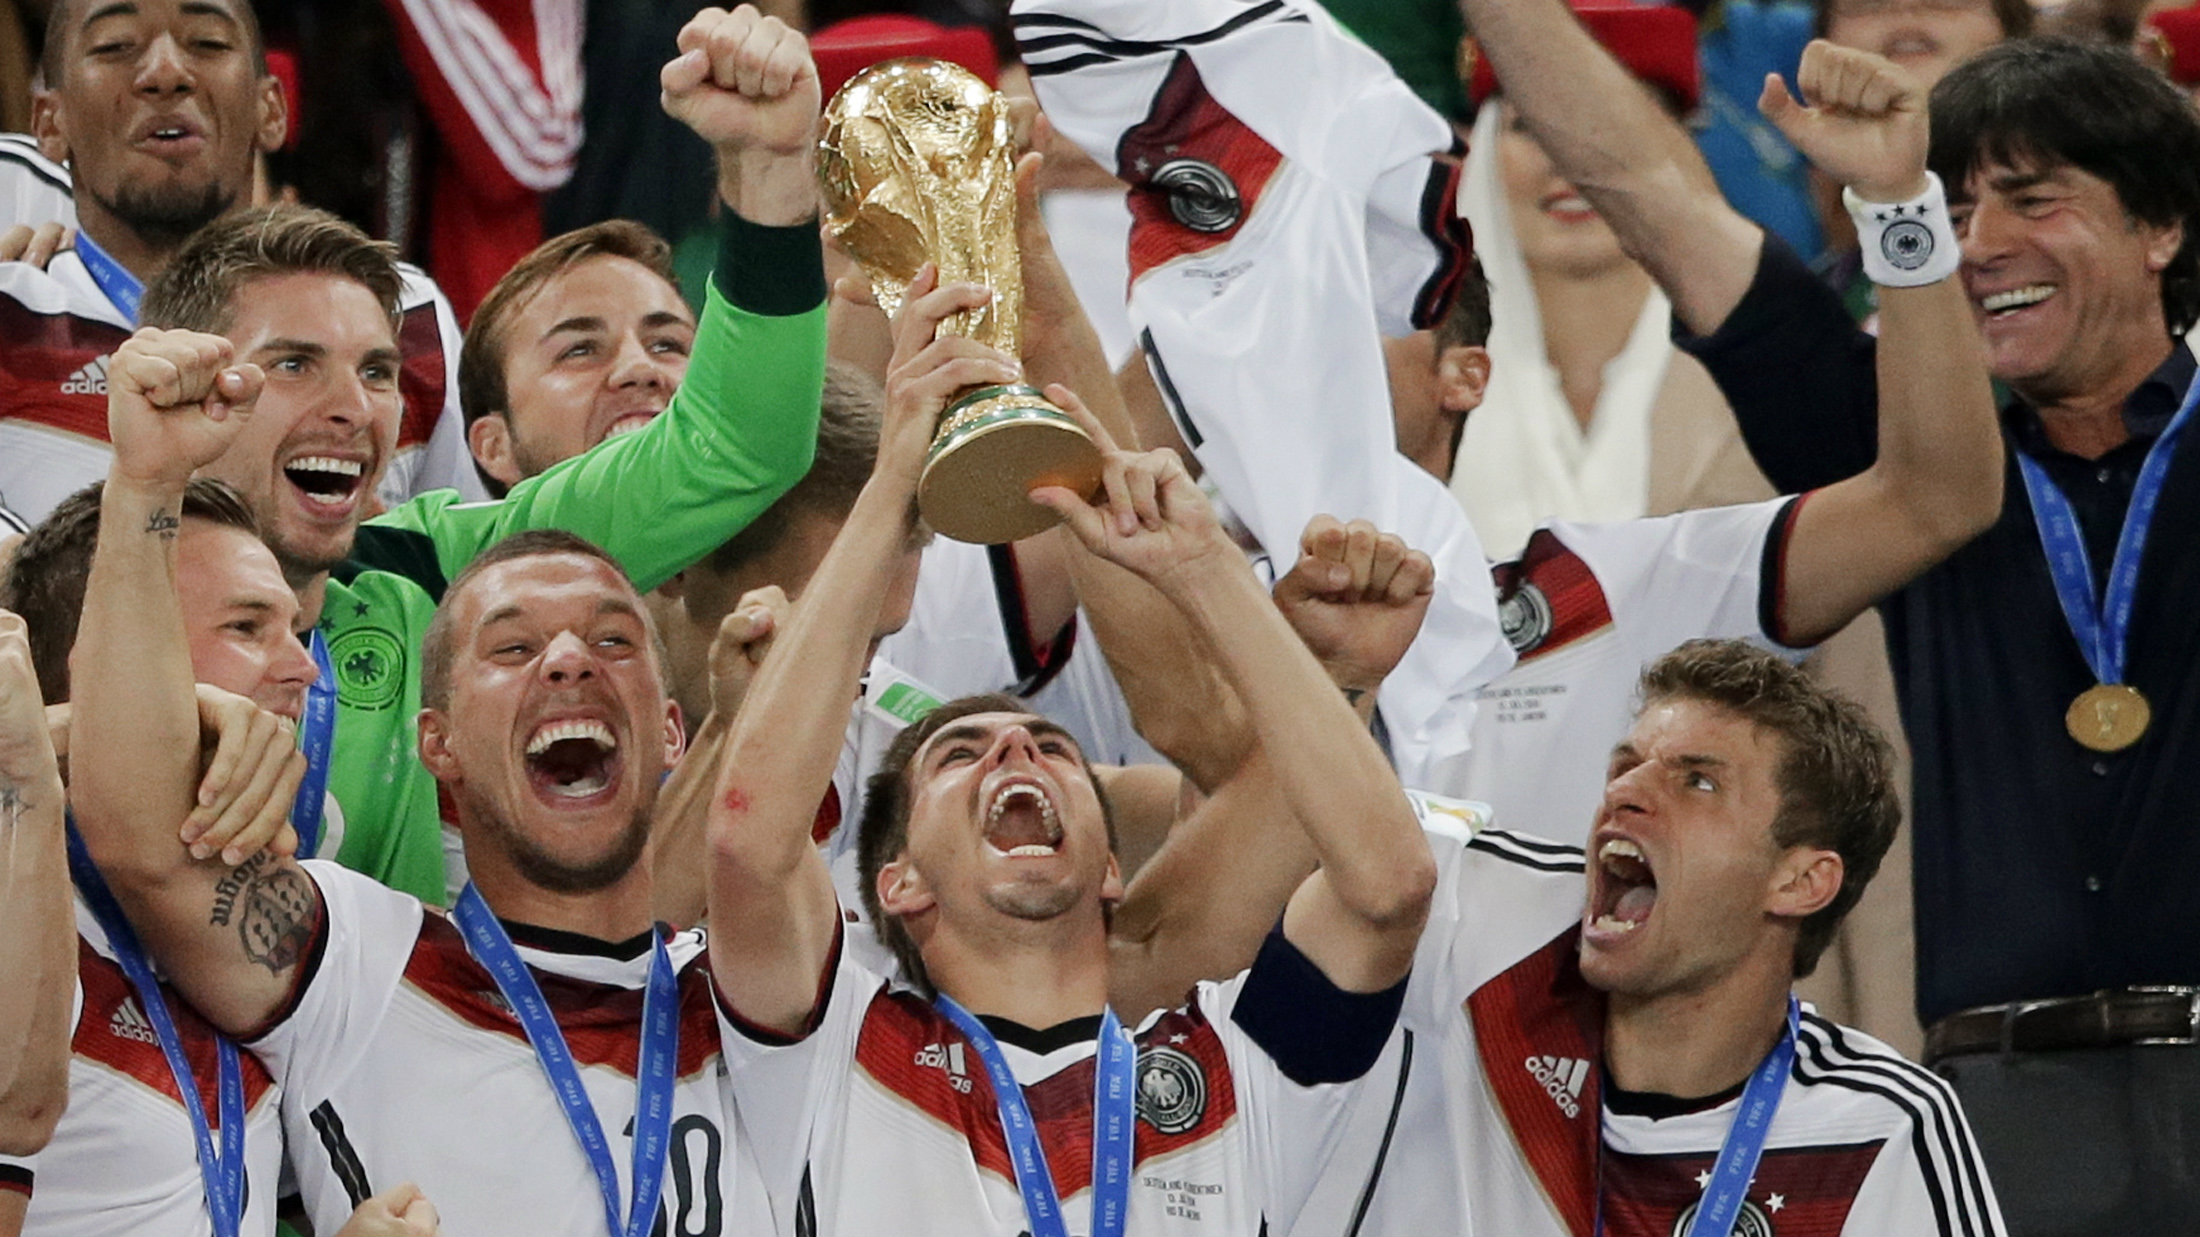 German players celebrate with their trophy after the World Cup final soccer match between Germany and Argentina at the Maracana Stadium in Rio de Janeiro, Brazil, Sunday, July 13, 2014